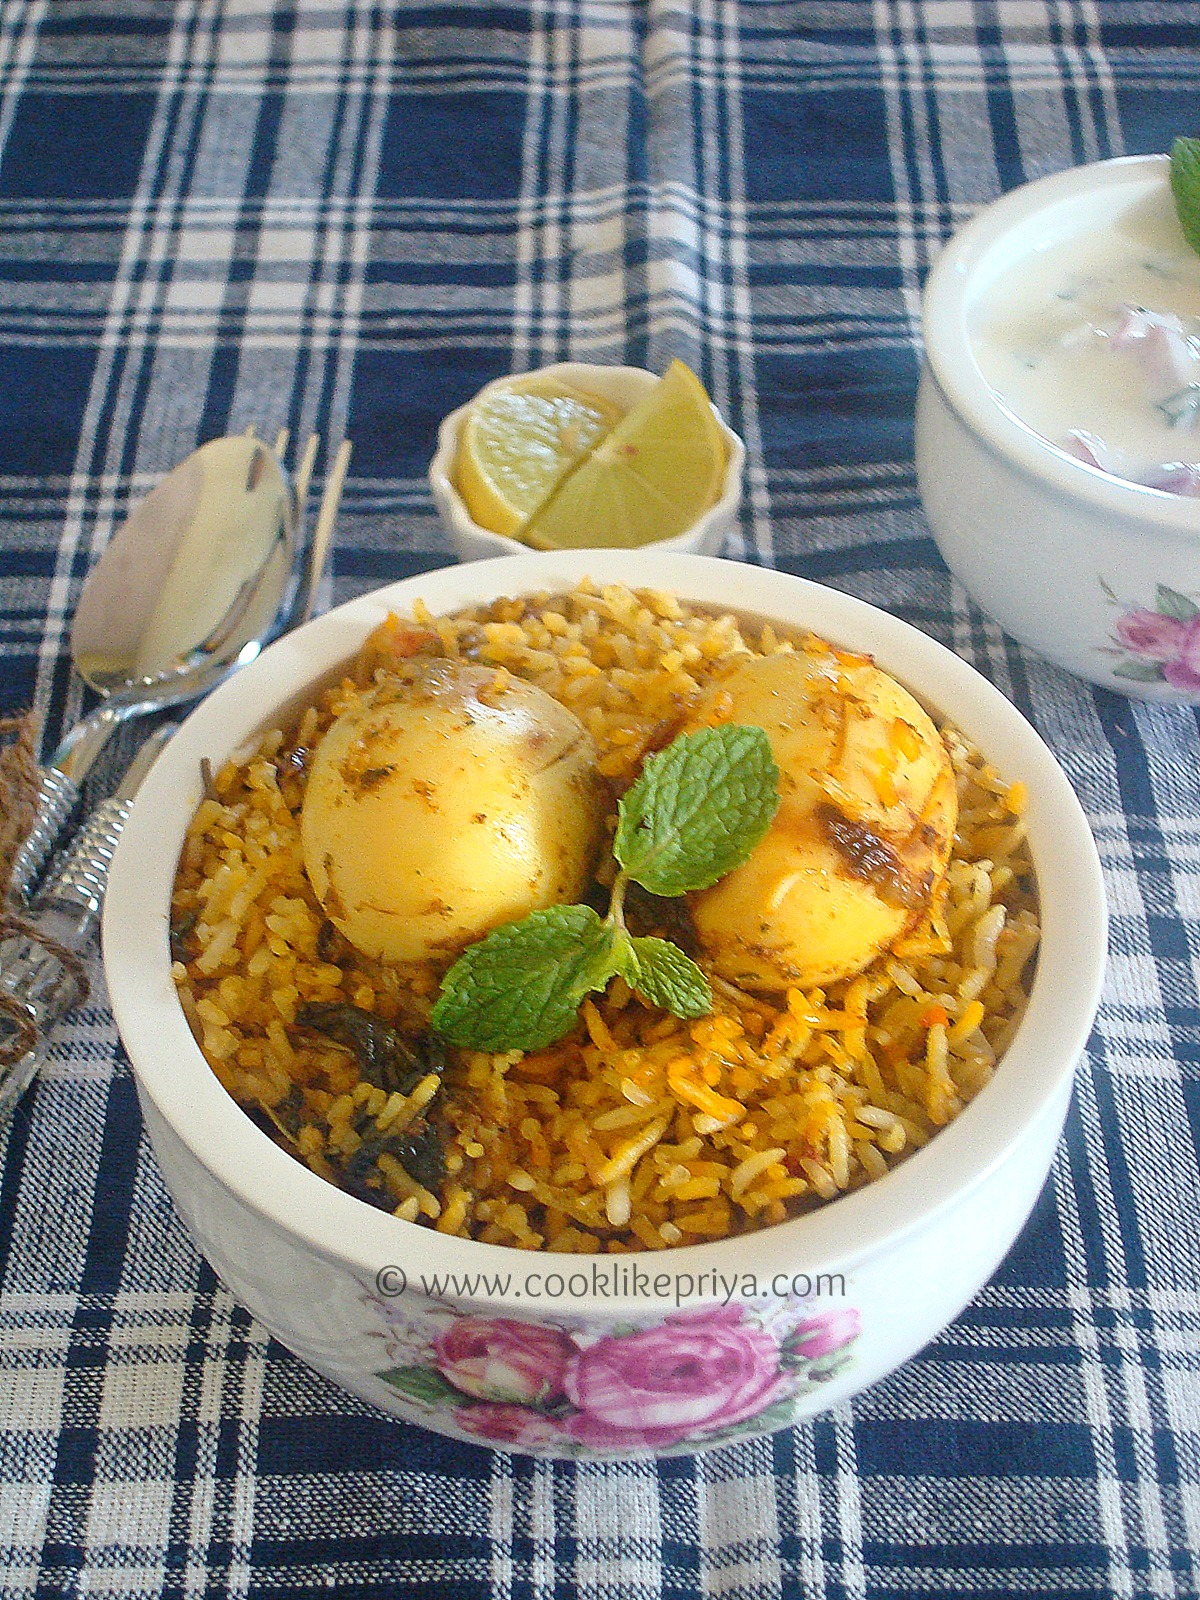 hyderabad egg biryani